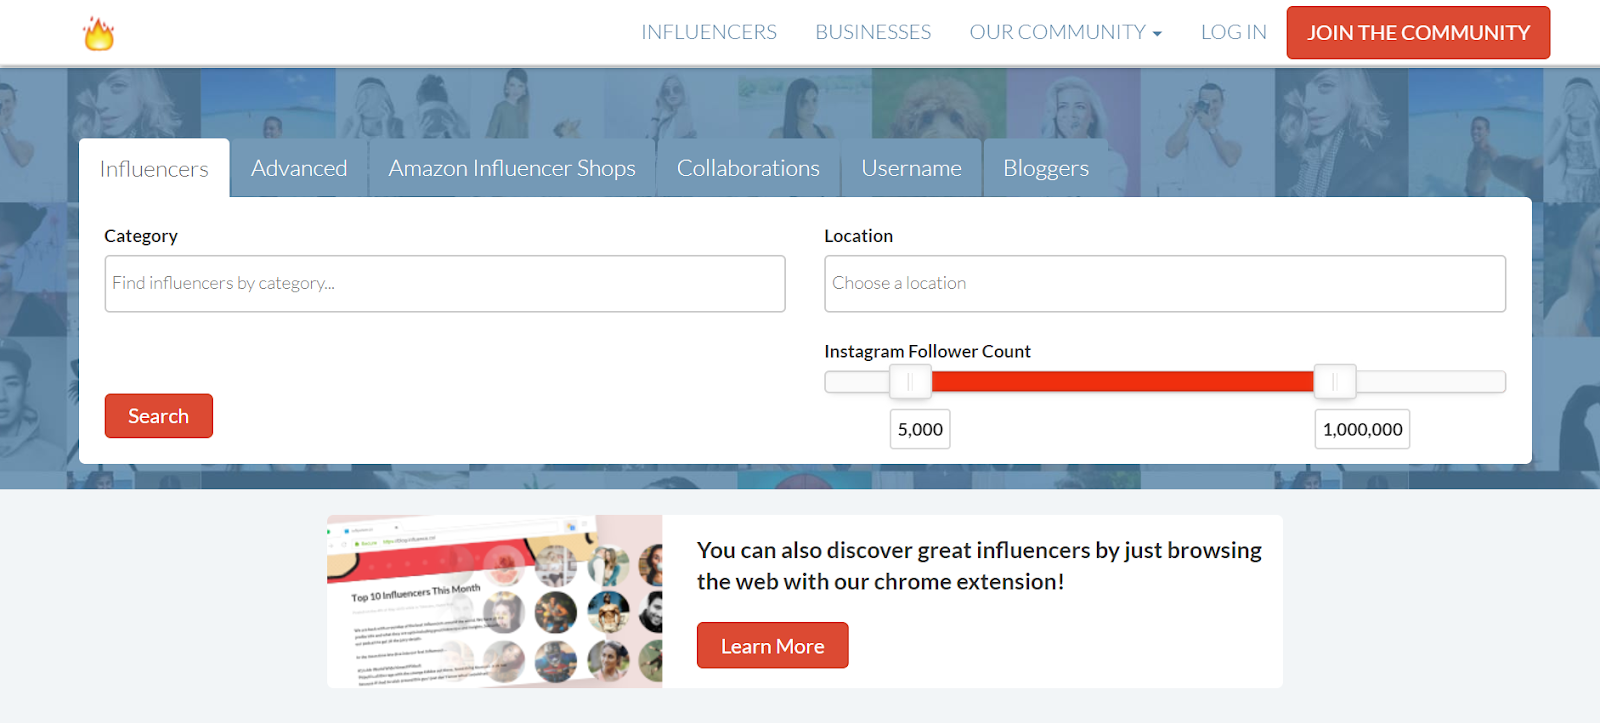 How to Leverage Influencer Marketing Strategy to Drive More Conversions